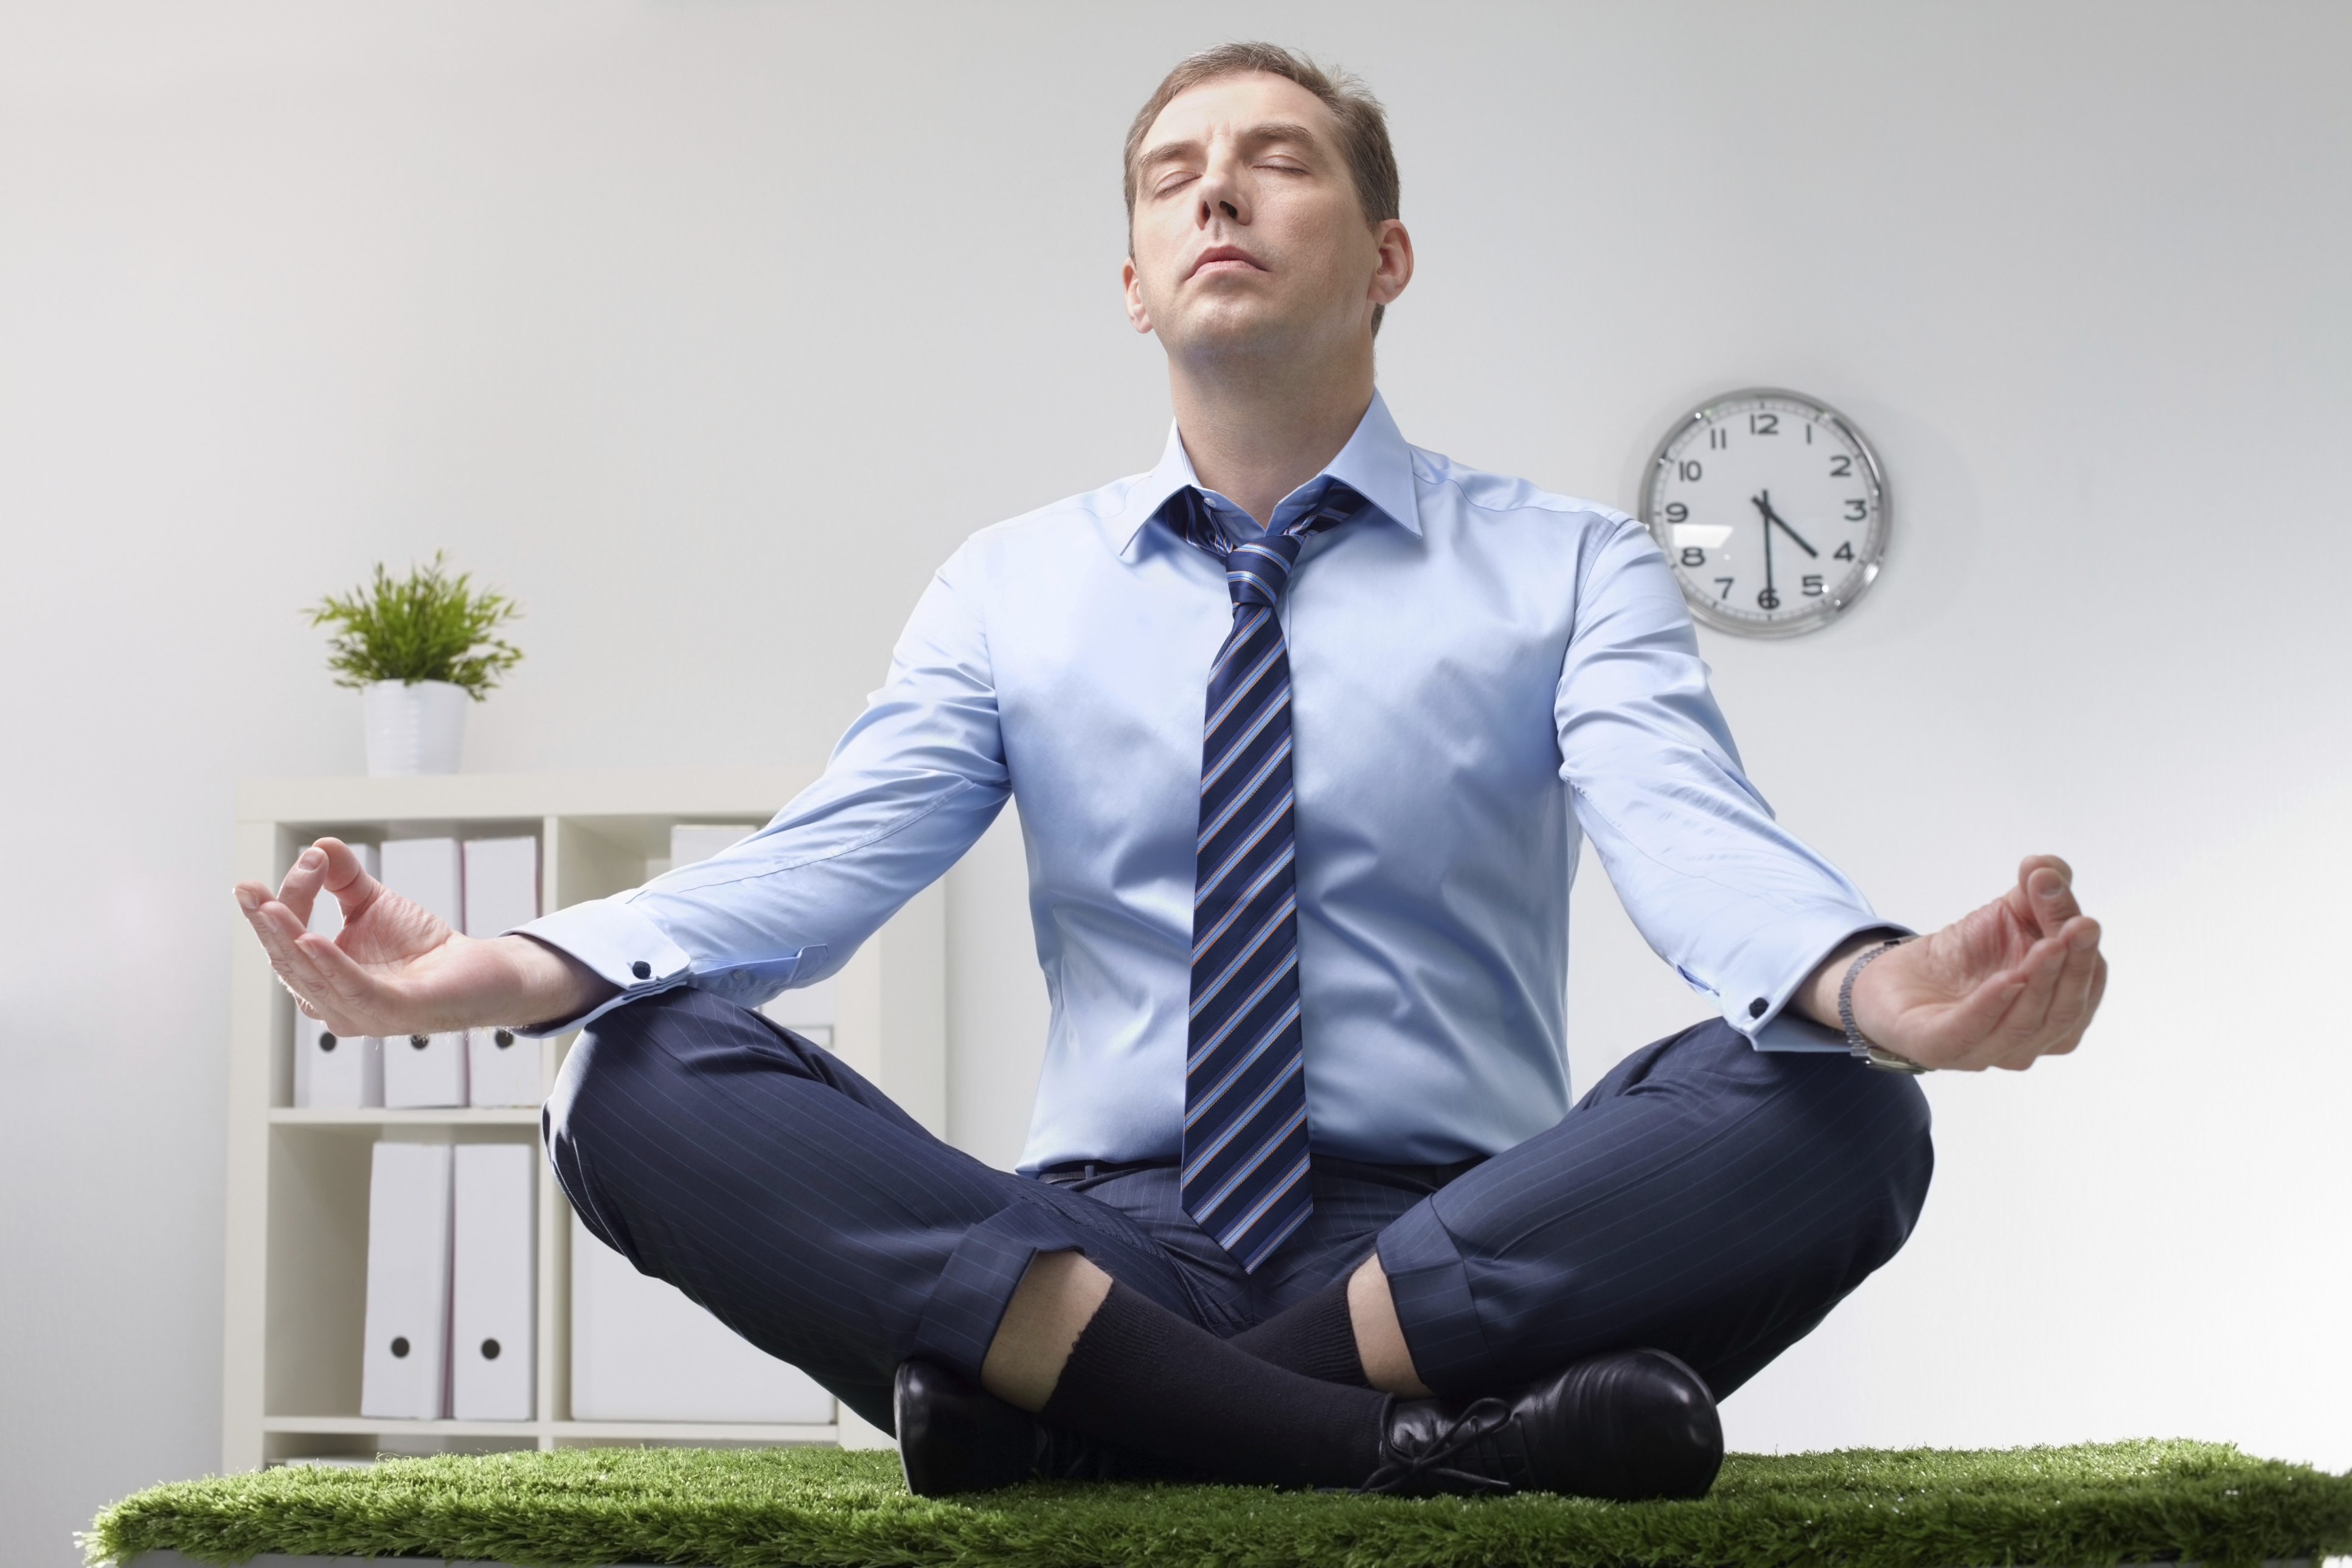 5 Ways Mindfulness Can Reduce Work Tension